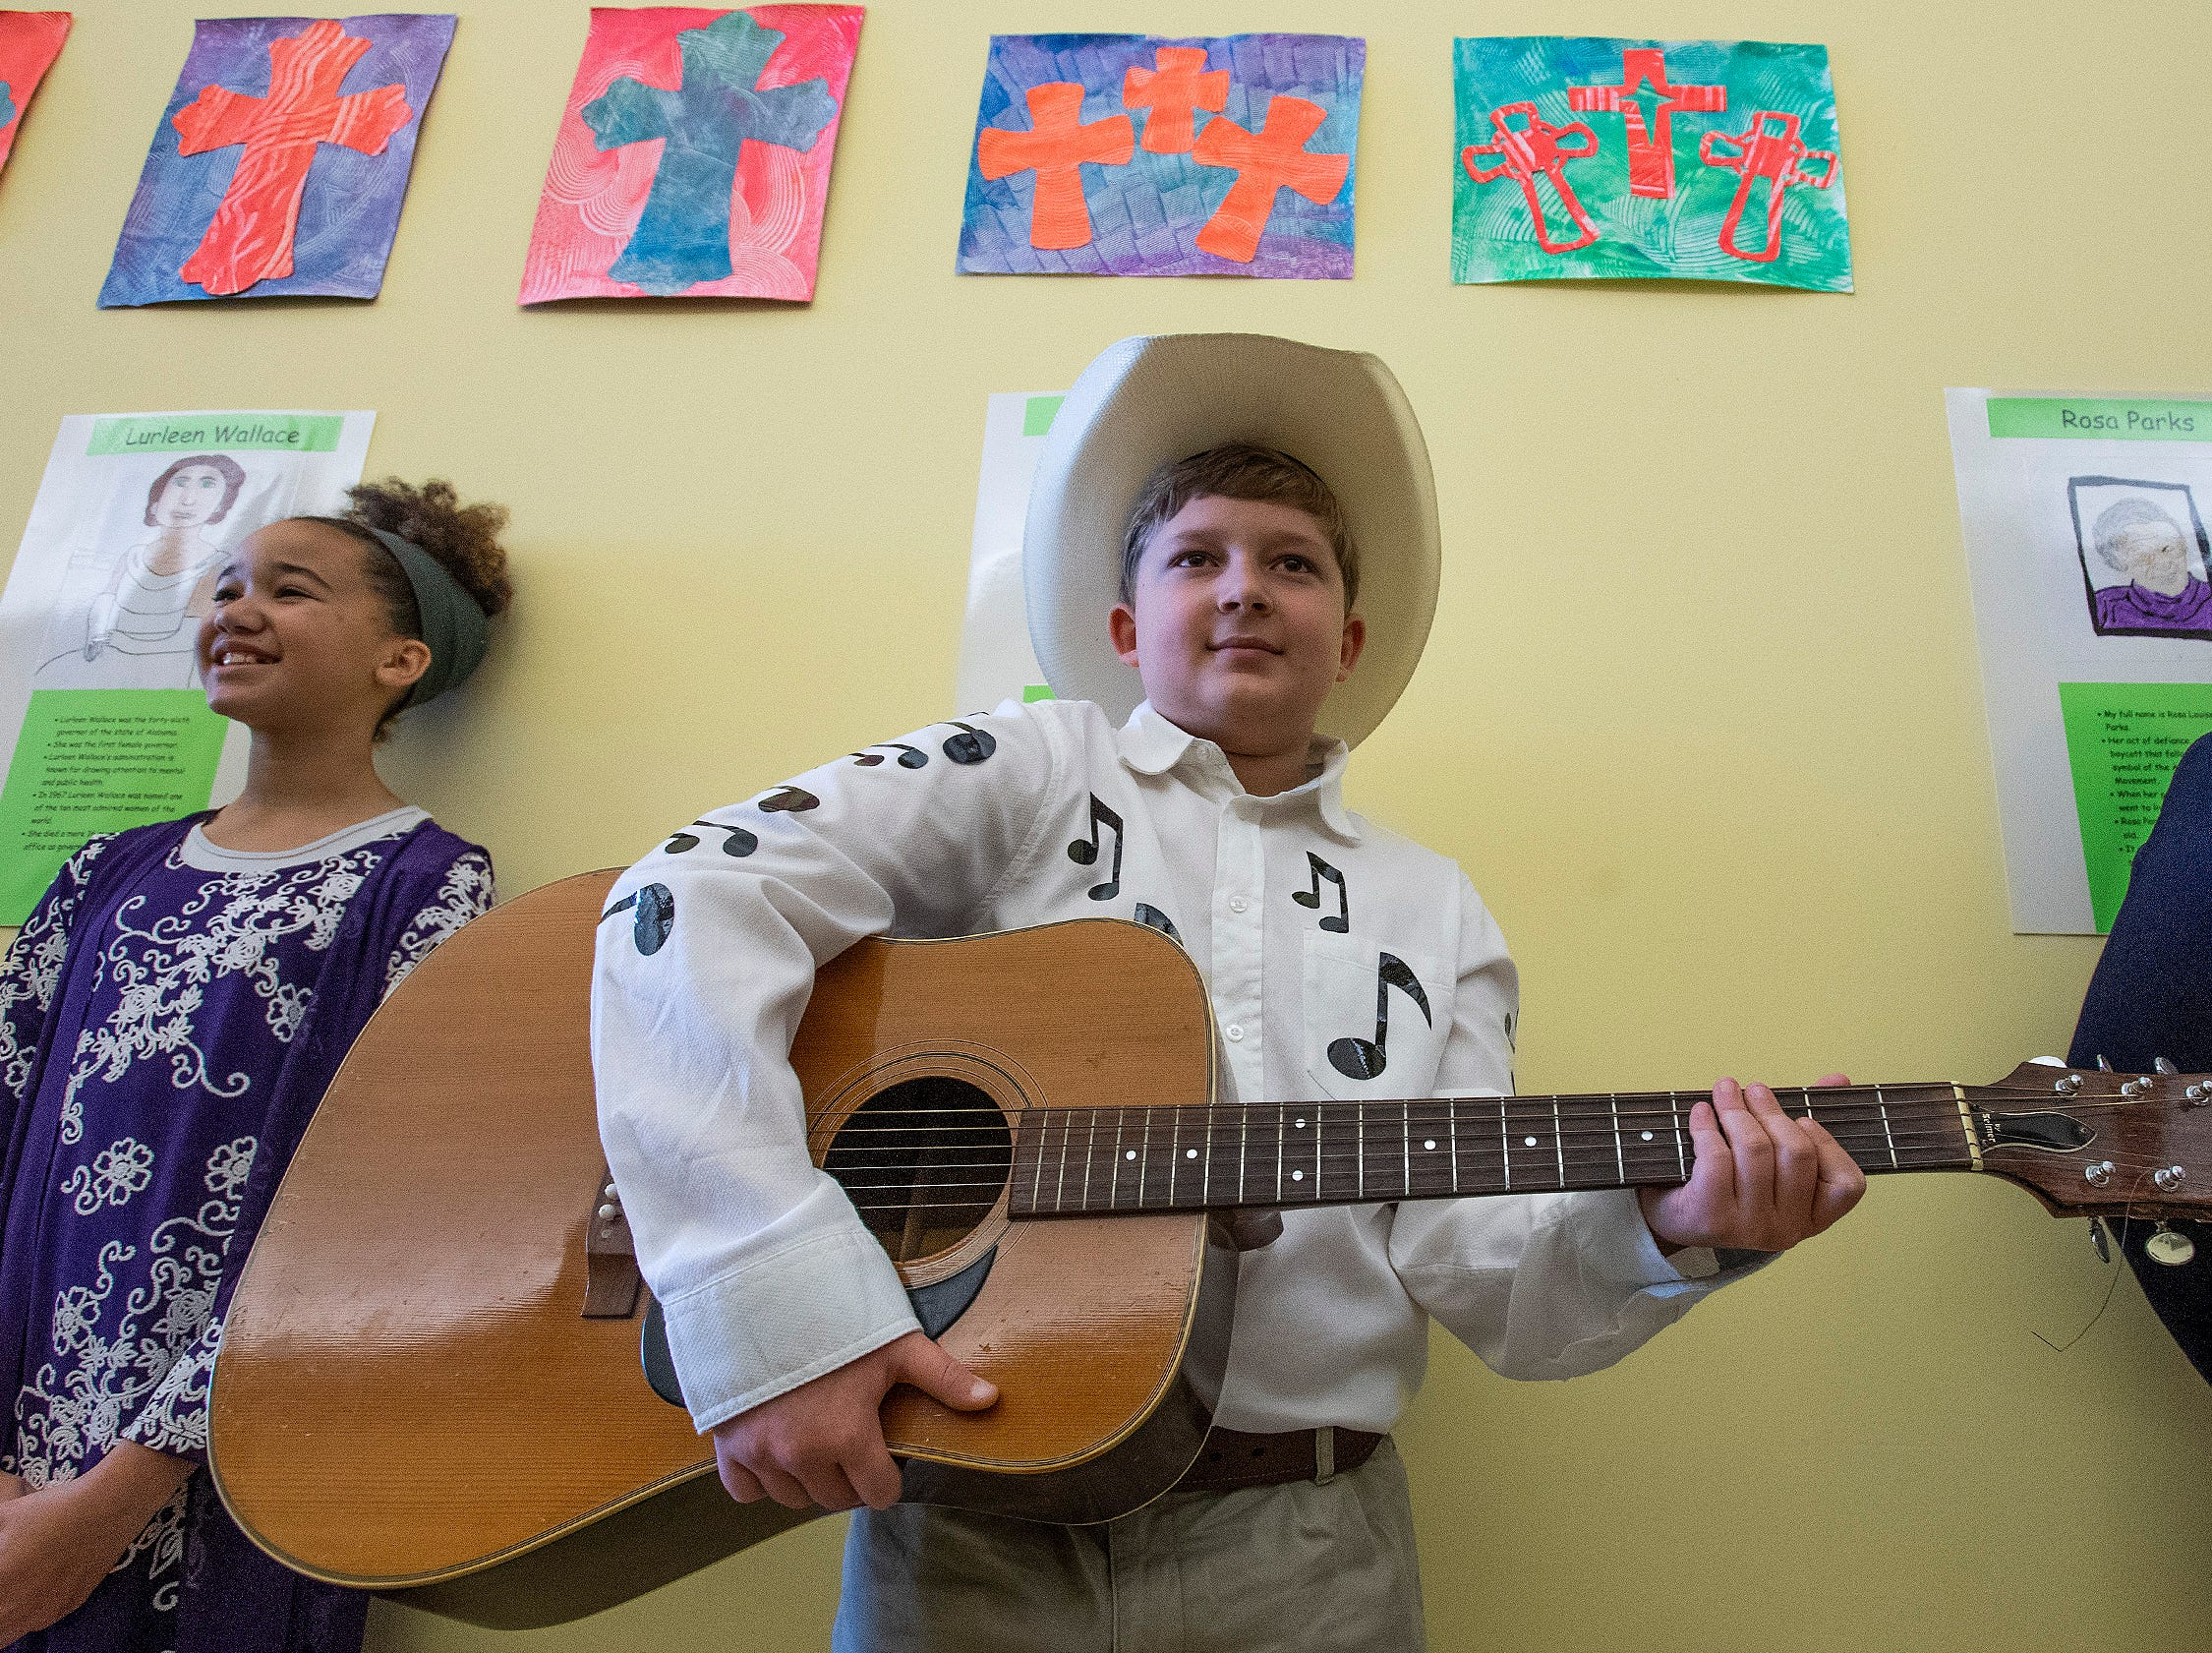 Emilee Alexander plays Lurleen Wallace, Andrew Peavy plays Hank Williams and Hayley Whetstone plays Rosa Parks as students portray Alabamians in their Alabama Bicentennial Wax Museum, telling the stories of their characters to visitors, at Holy Cross Episcopal School in Montgomery, Ala., on Friday February 15, 2019.